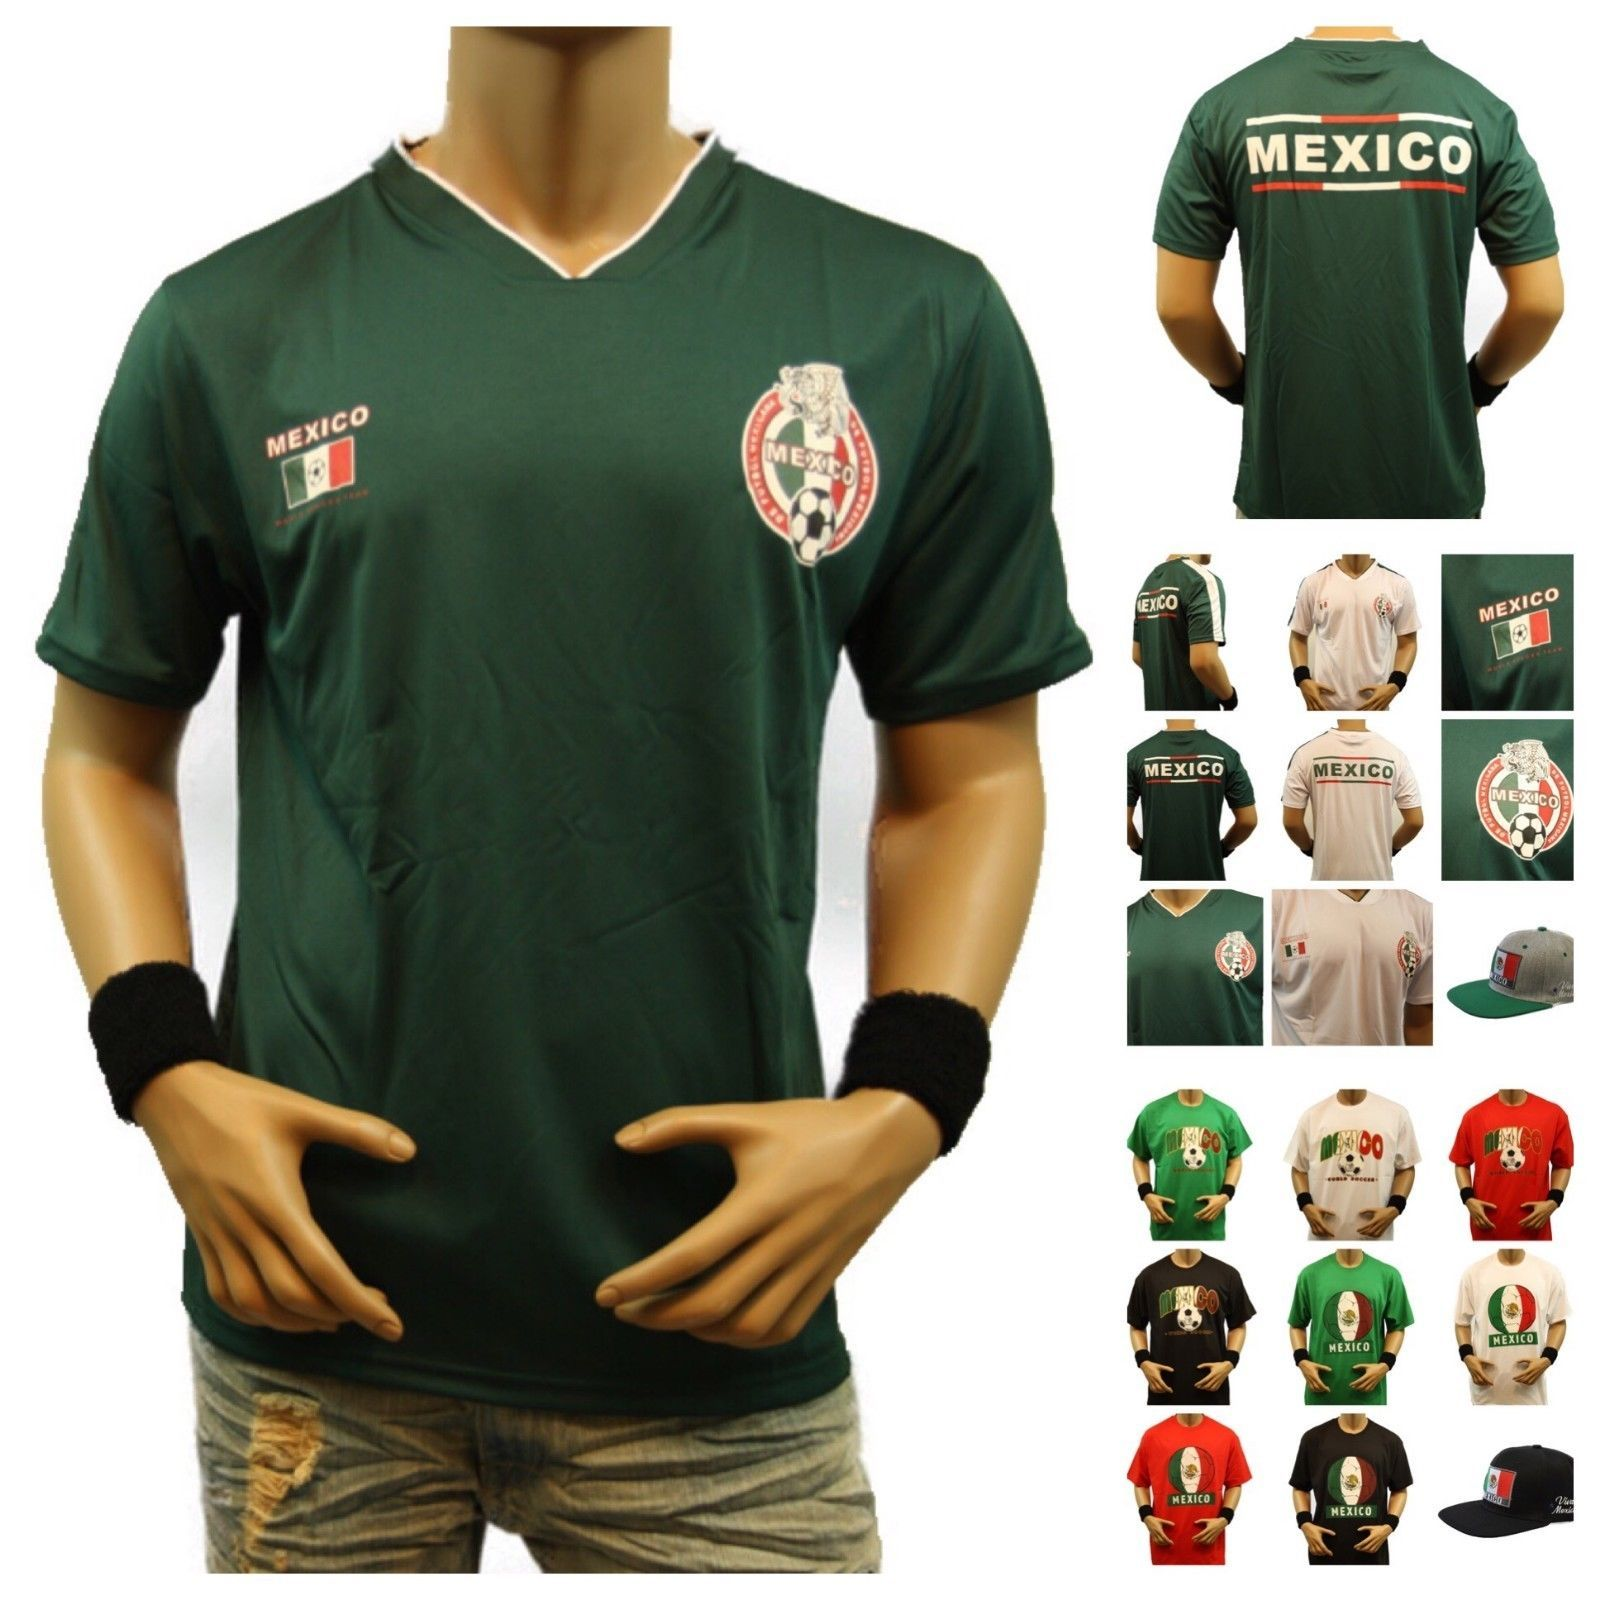 Mexico Soccer Jersey 2018 World Cup Team T-Shirt Football Men Uniform Tee  Sports Discount Price 22.99 Free Shipping Buy it Now 6a593b98d